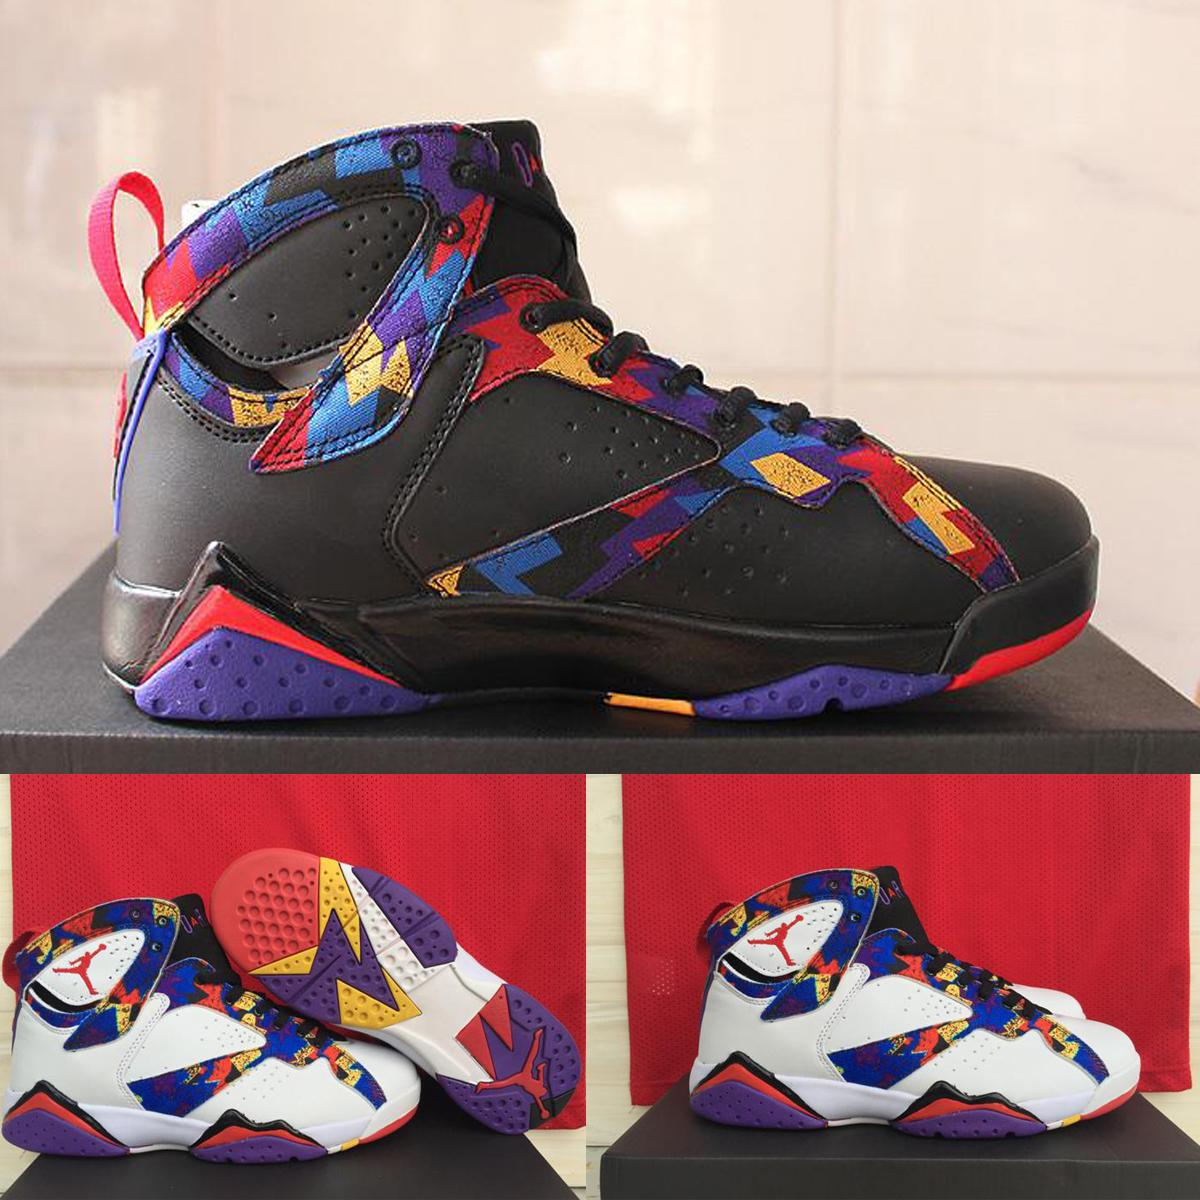 Nike Air Jordan 7 Vii Retro Sweater Men'S Basketball Shoes Black White,Wholesale  Cheap Aj7 For Men Sports Shoes Discount Sneakers Sports Shoes For Women Low  ...